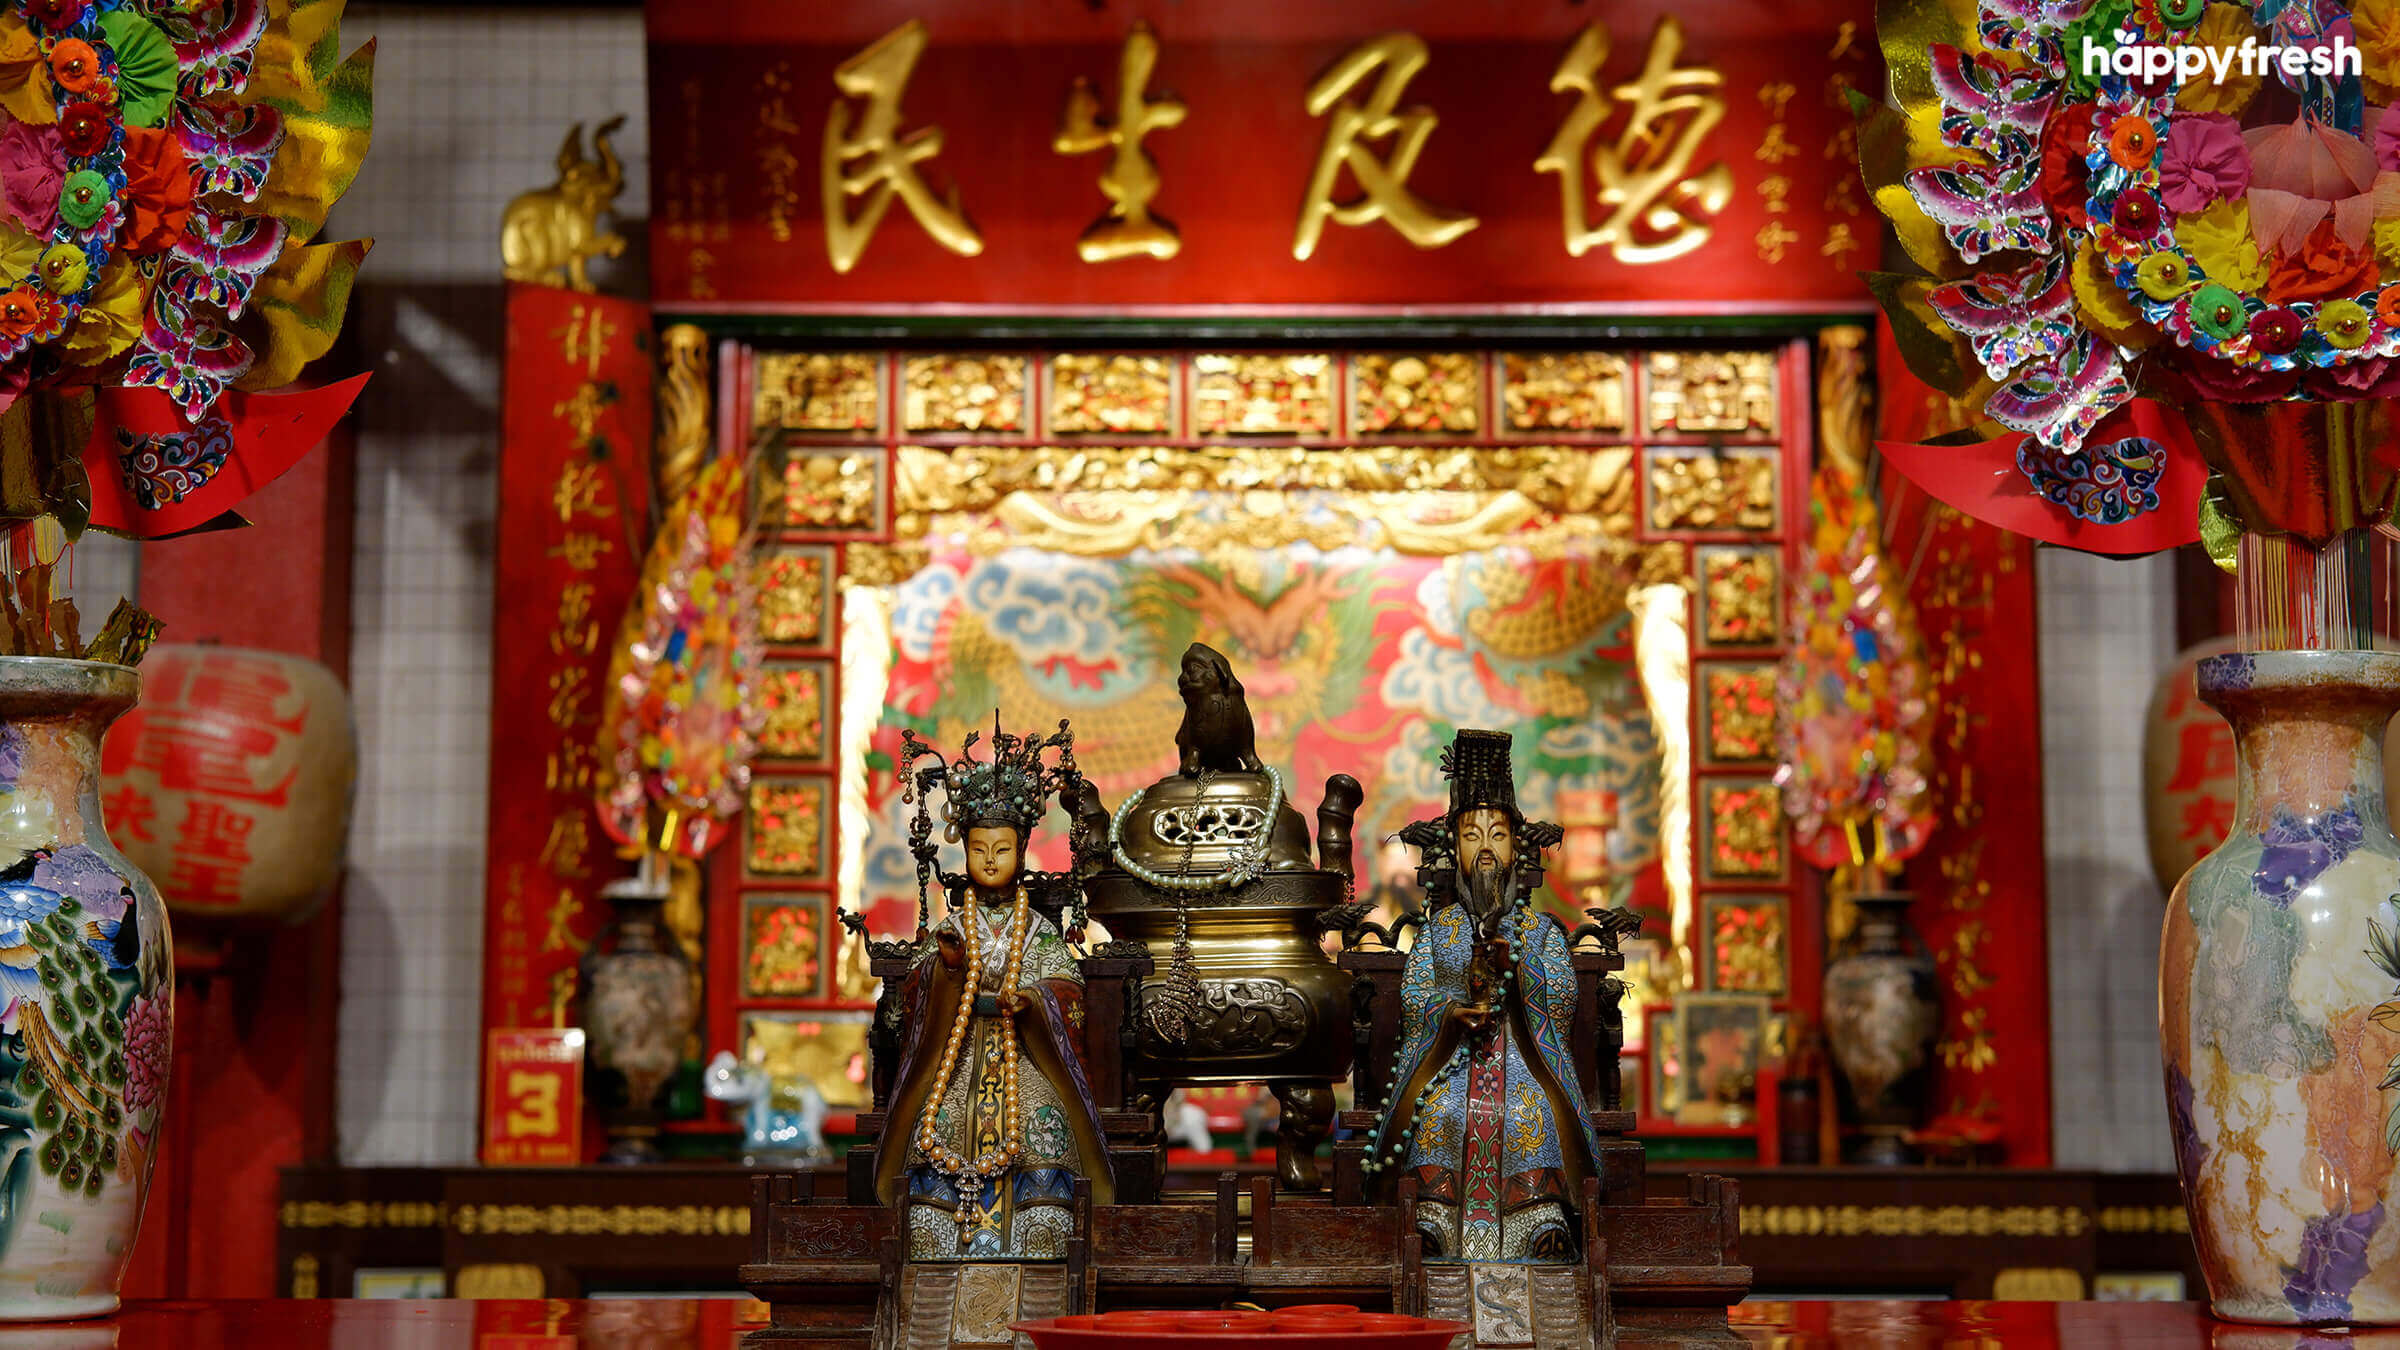 HappyFresh_Visit_6_Chinese_Shrines_In_Chinatown_Leng_Buai_Ia_Shrine_4